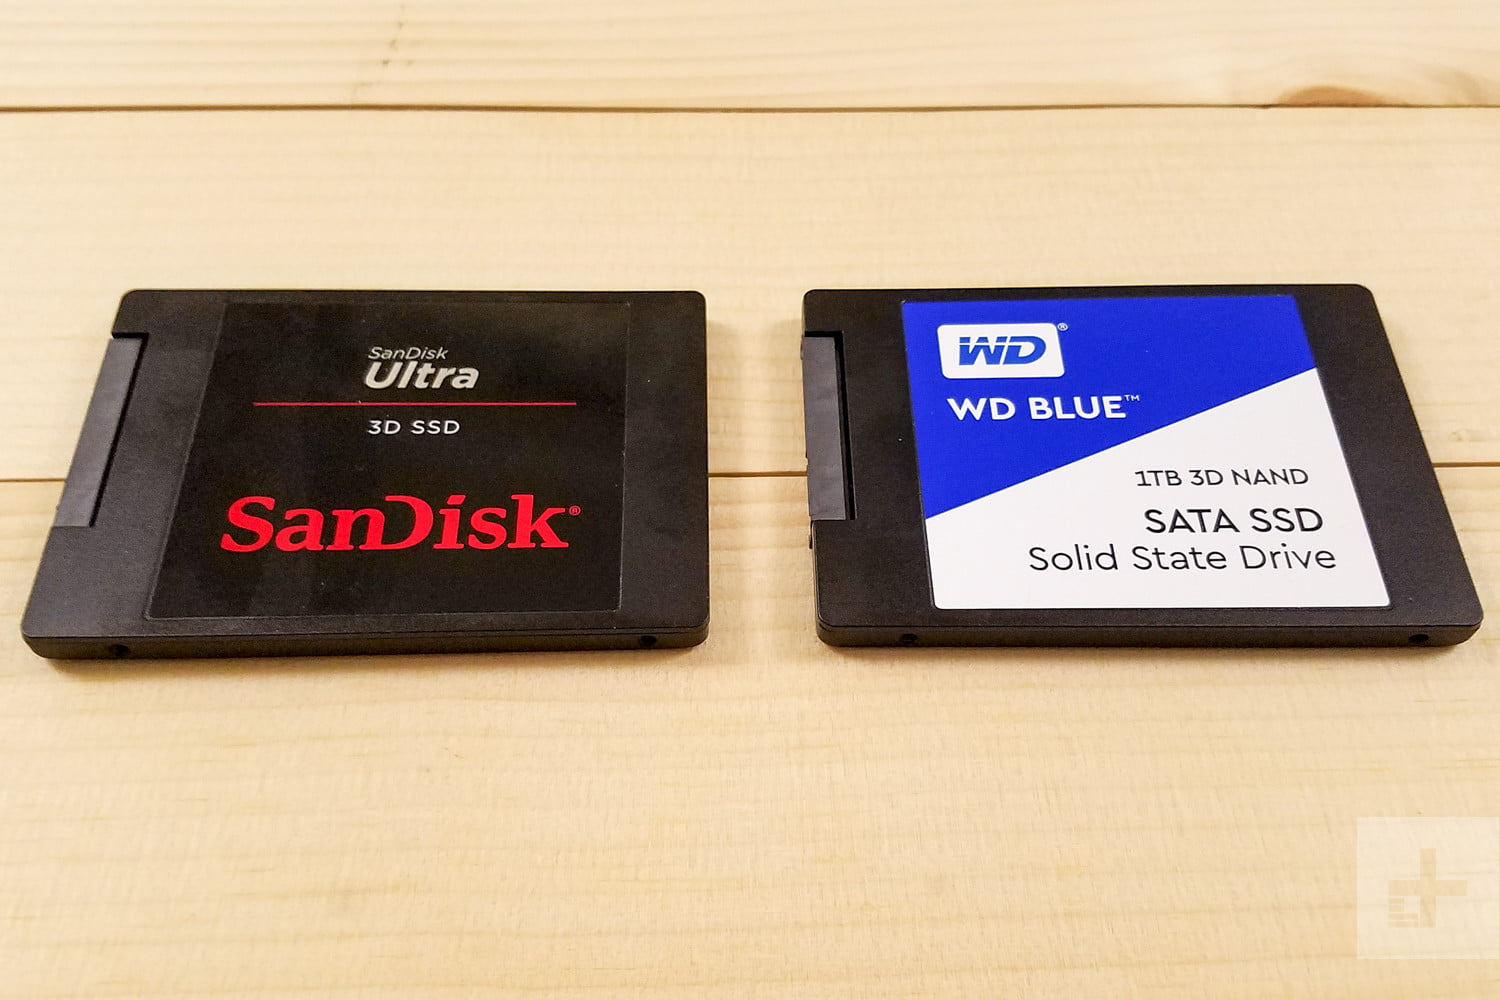 WD Blue 3D NAND SATA SSD and SanDisk Ultra 3D SSD sitting side-by-side aligned horizontally